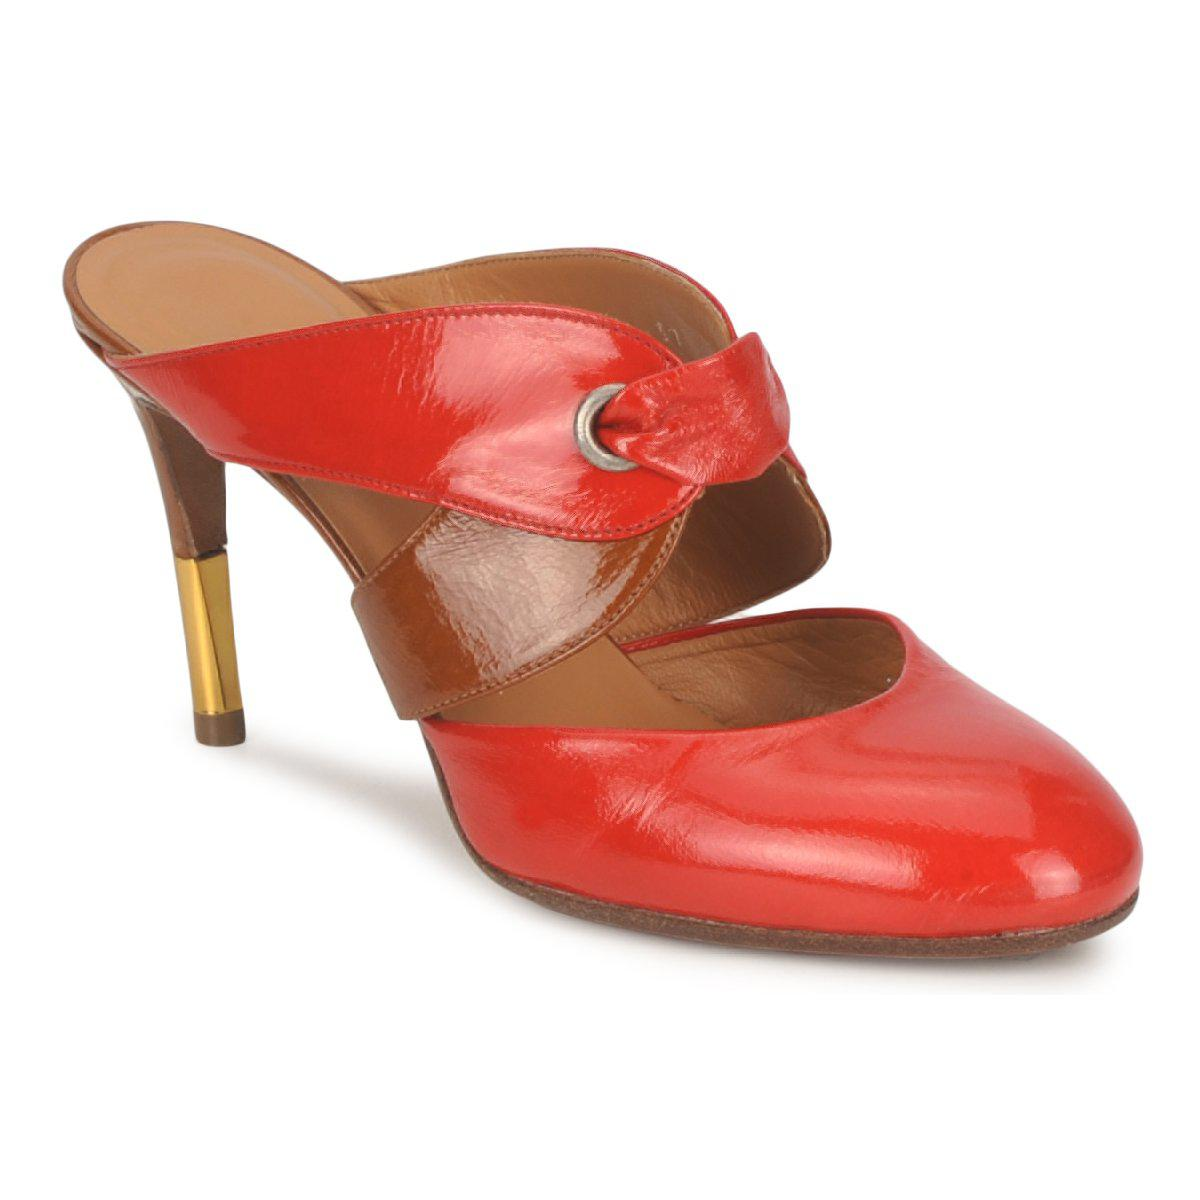 Michel Perry 12693 women's Mules / Casual Shoes in Super kznq24bLN